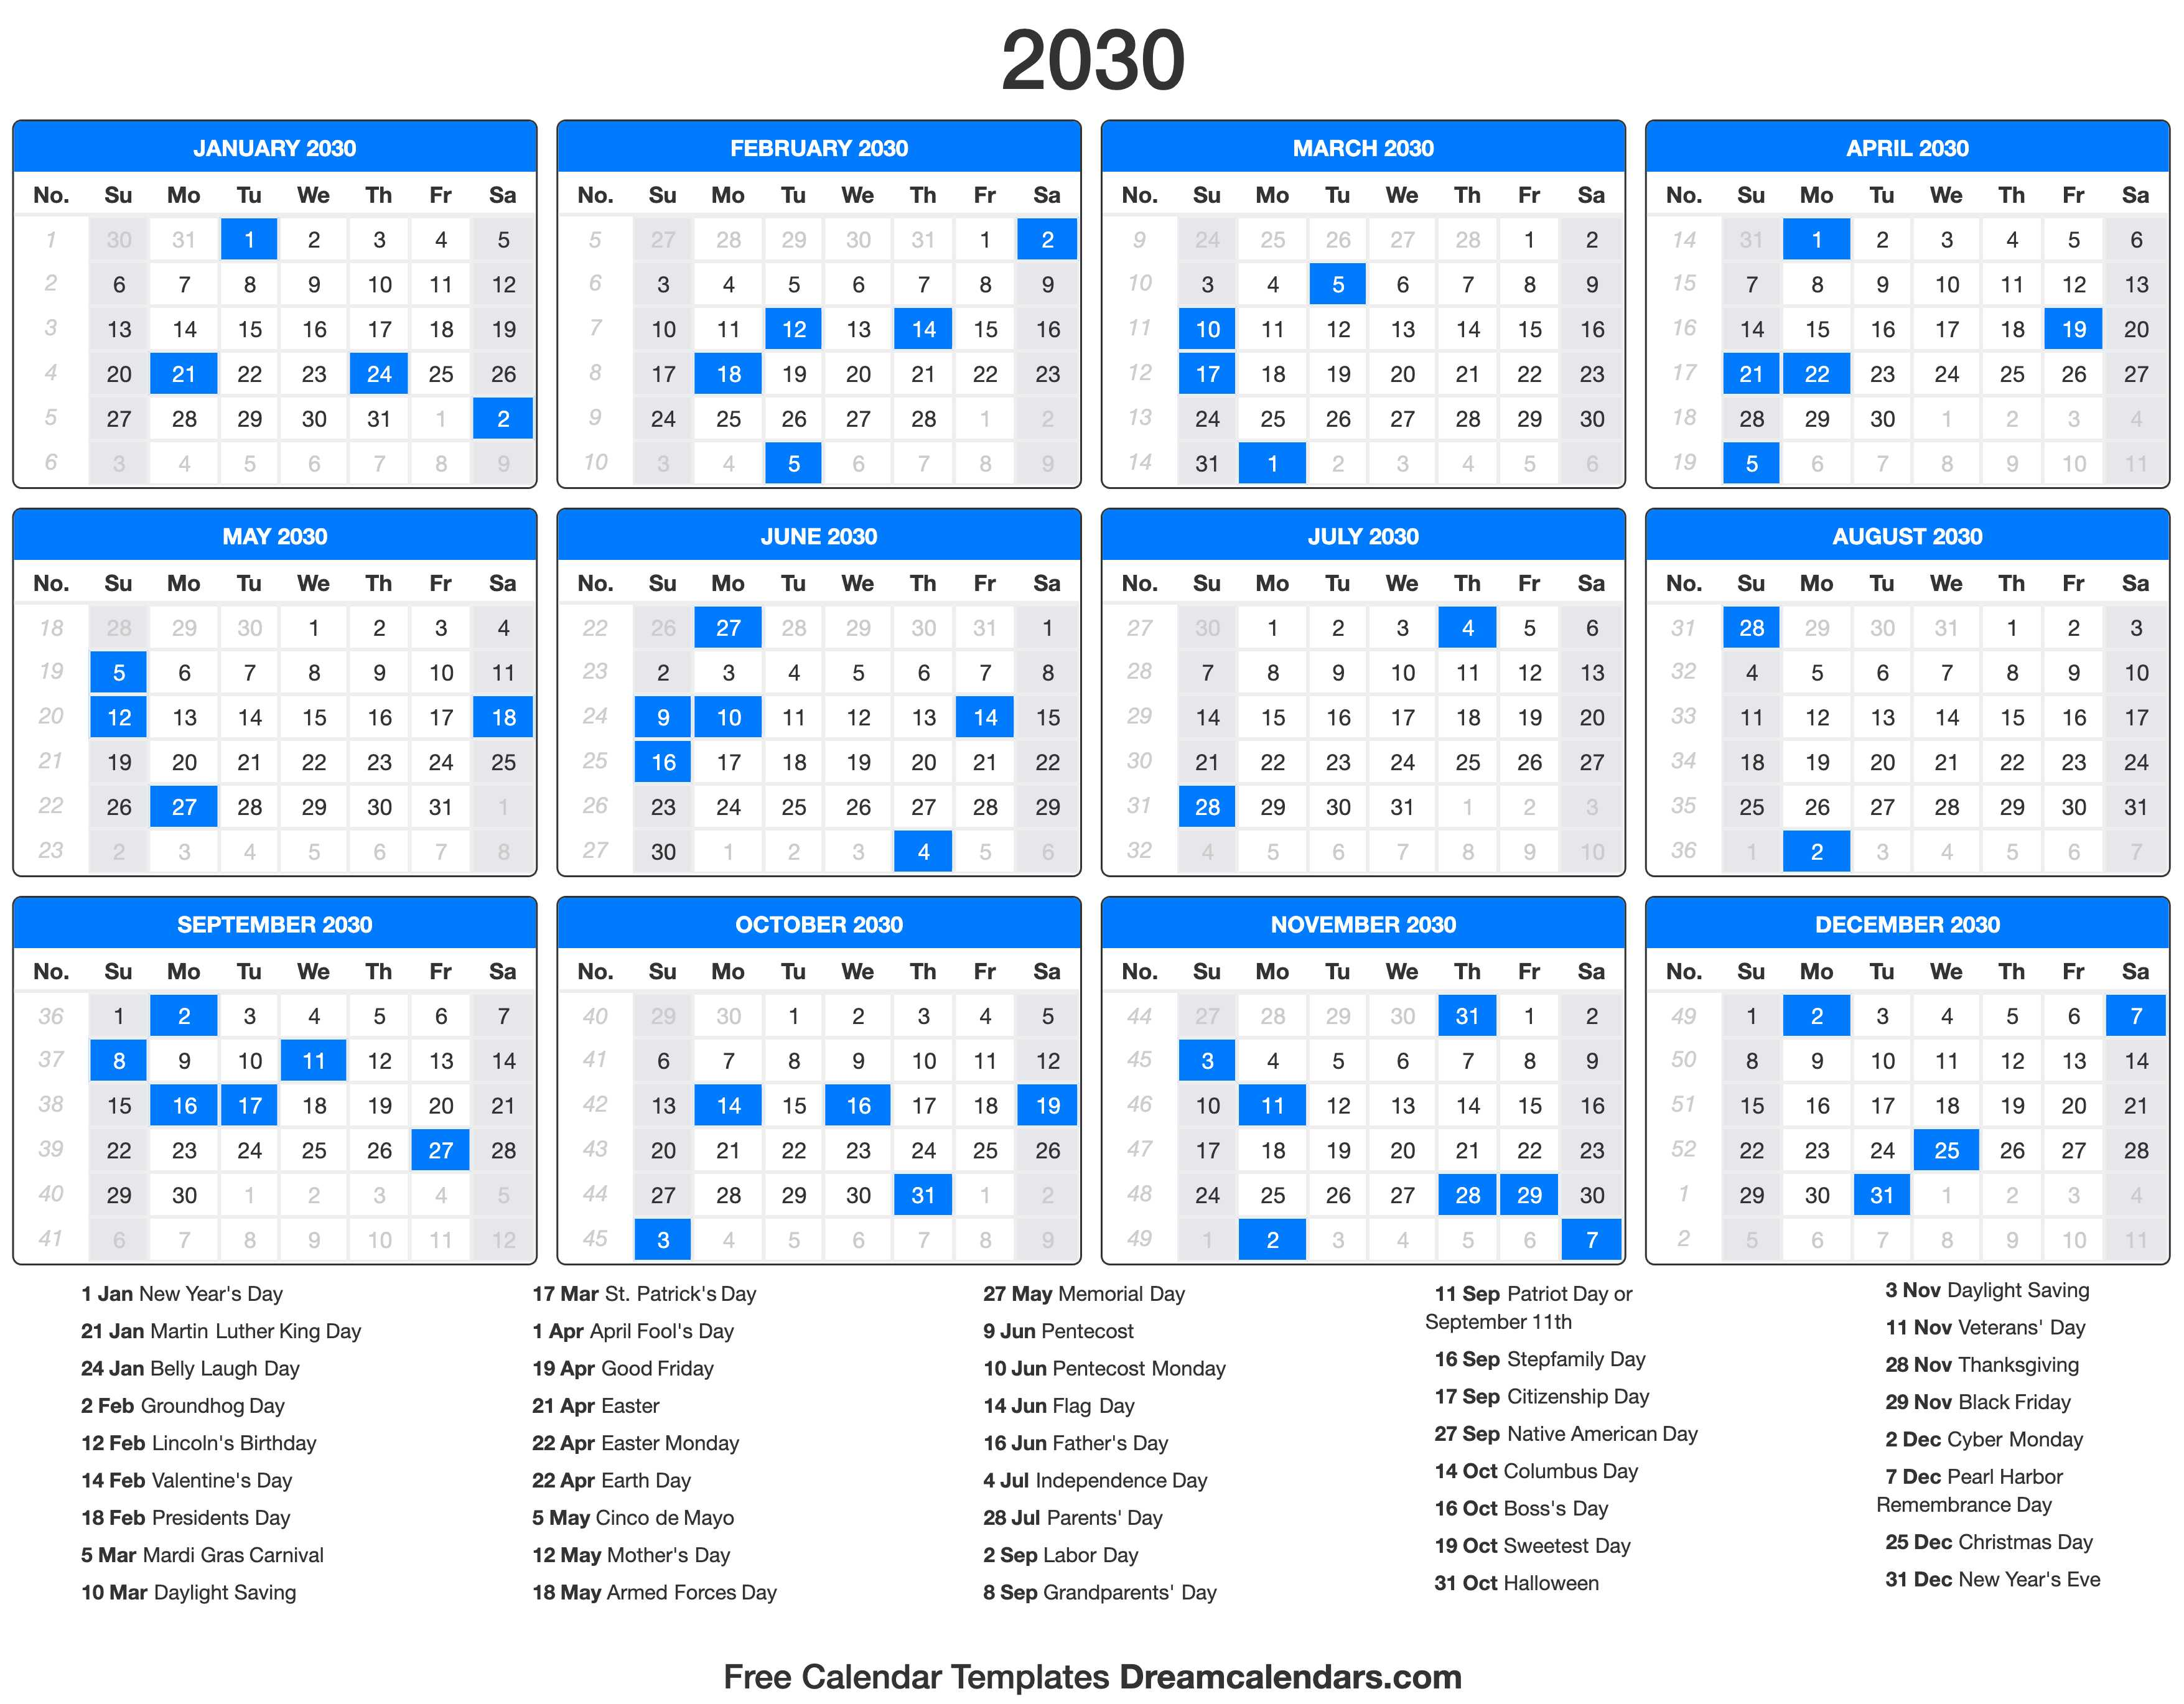 2030 Calendar with holidays